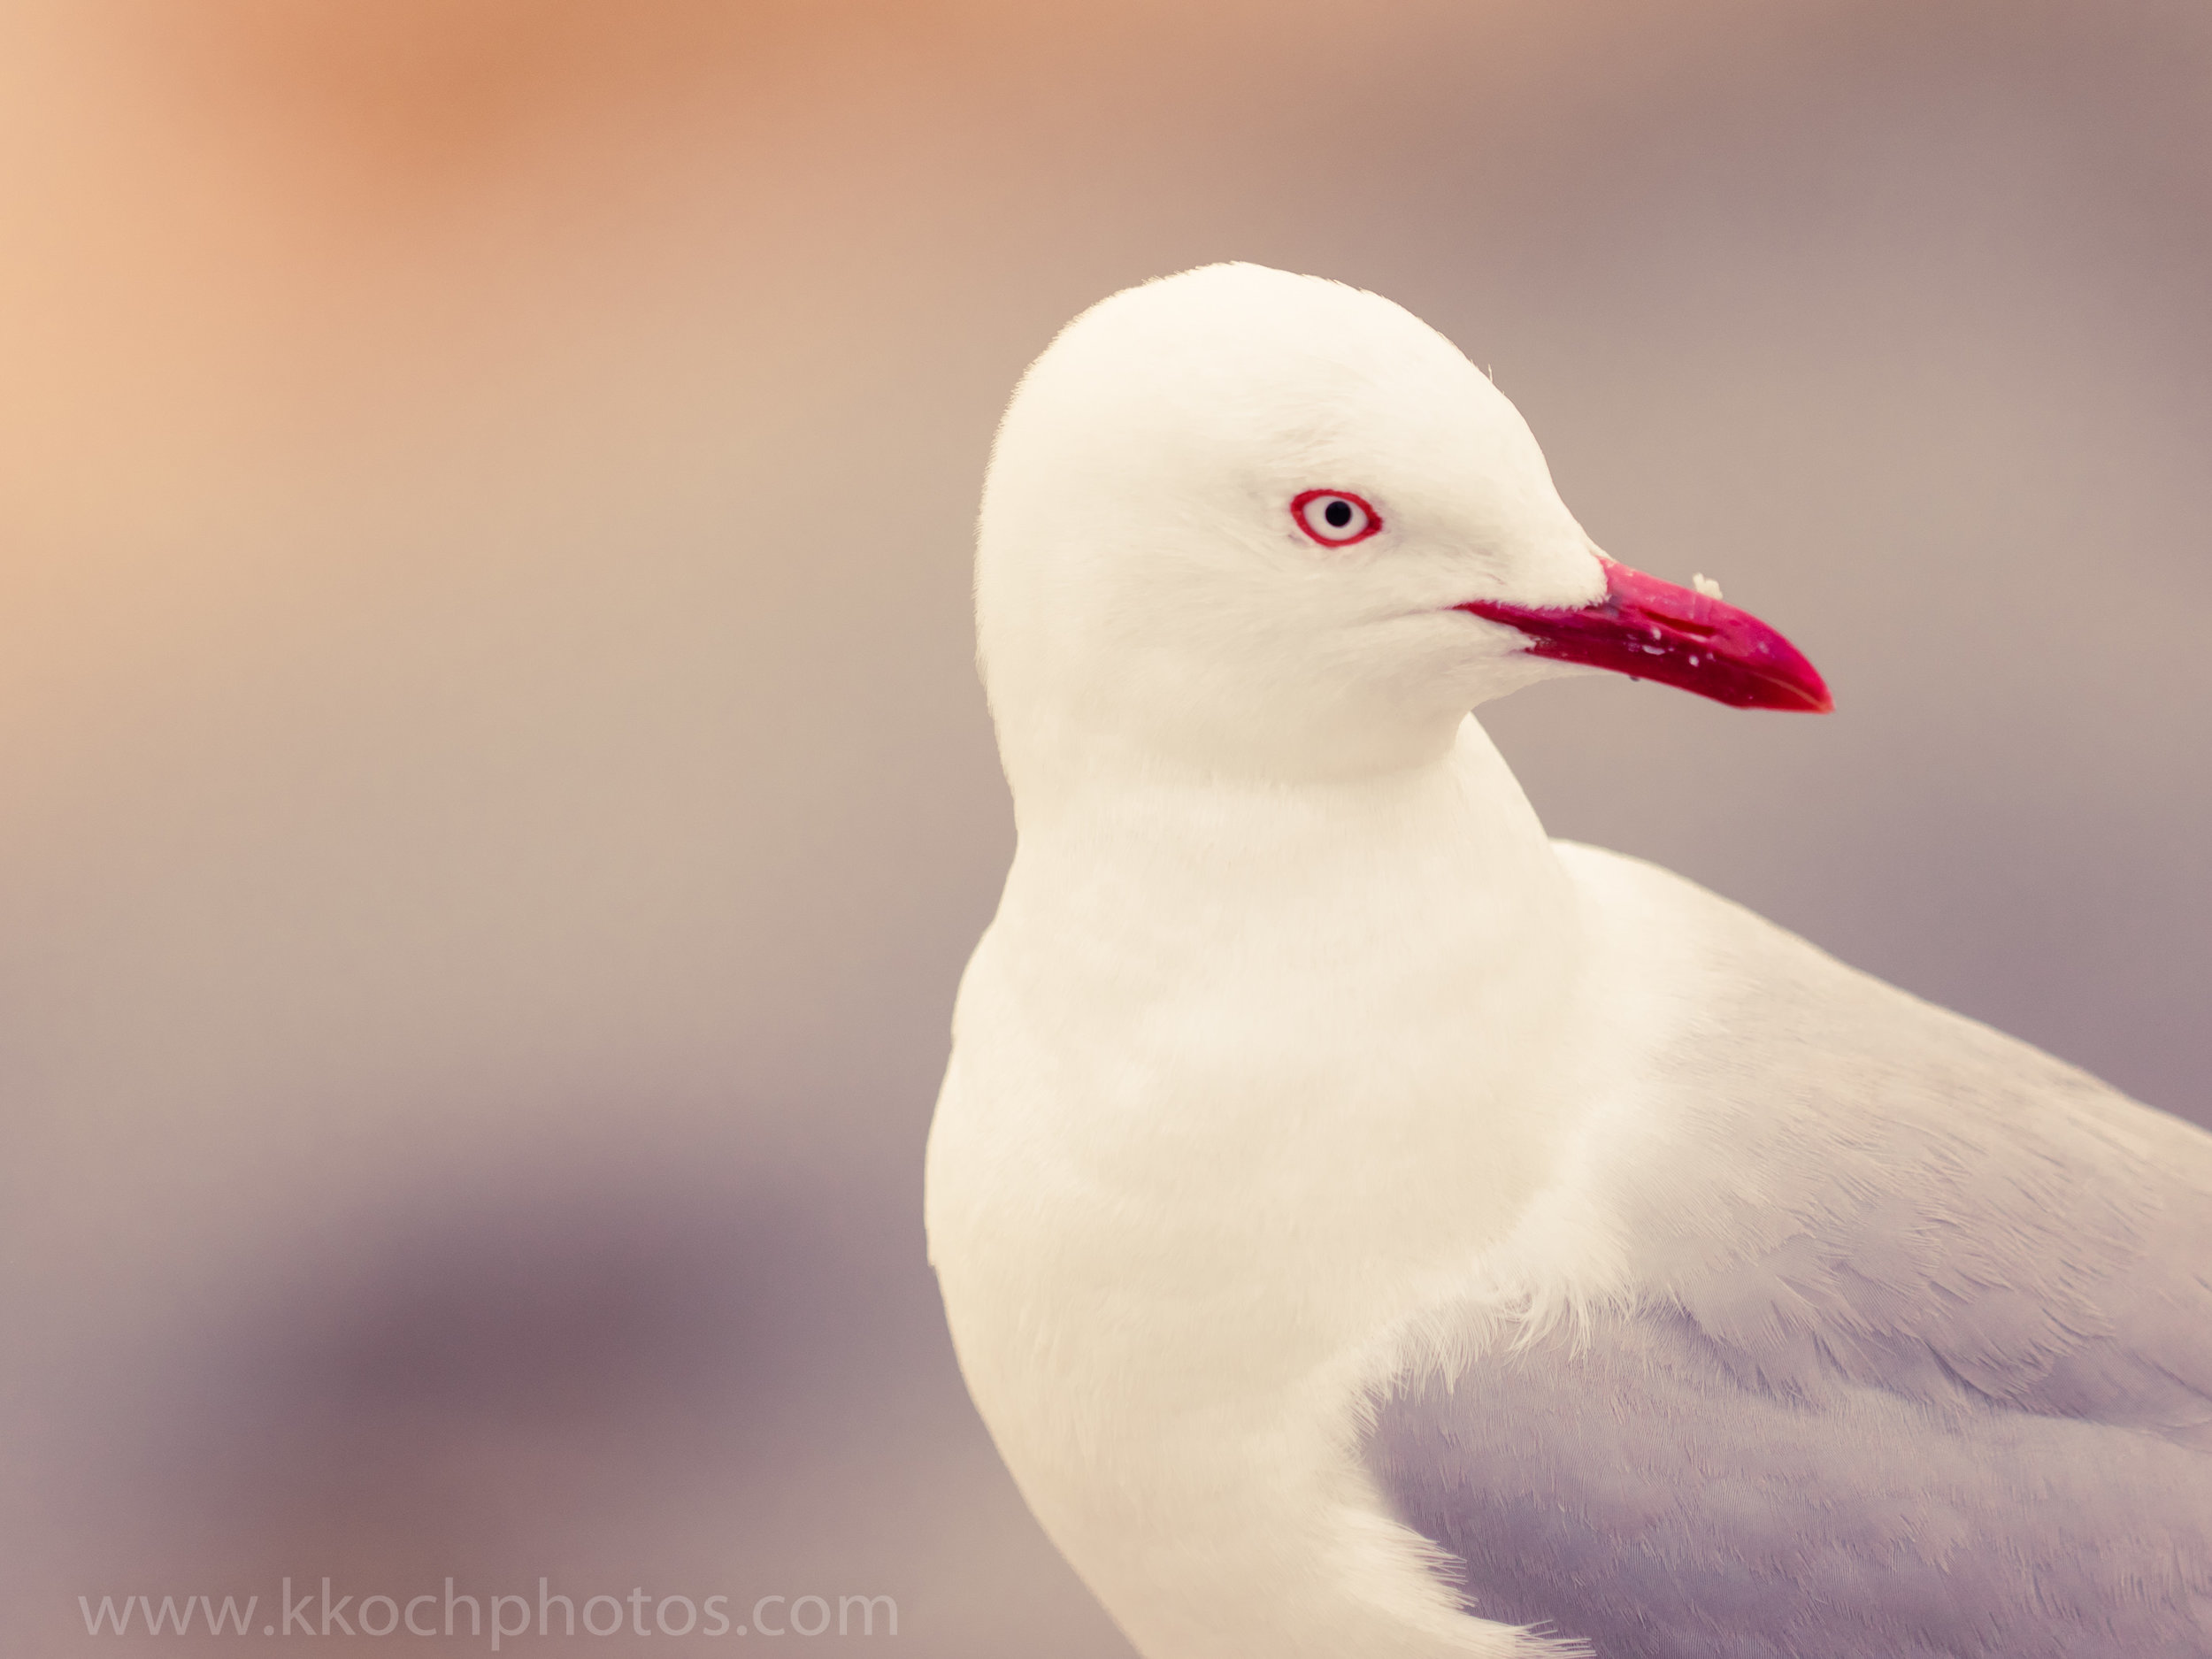 the seagulls look a bit different in NZ